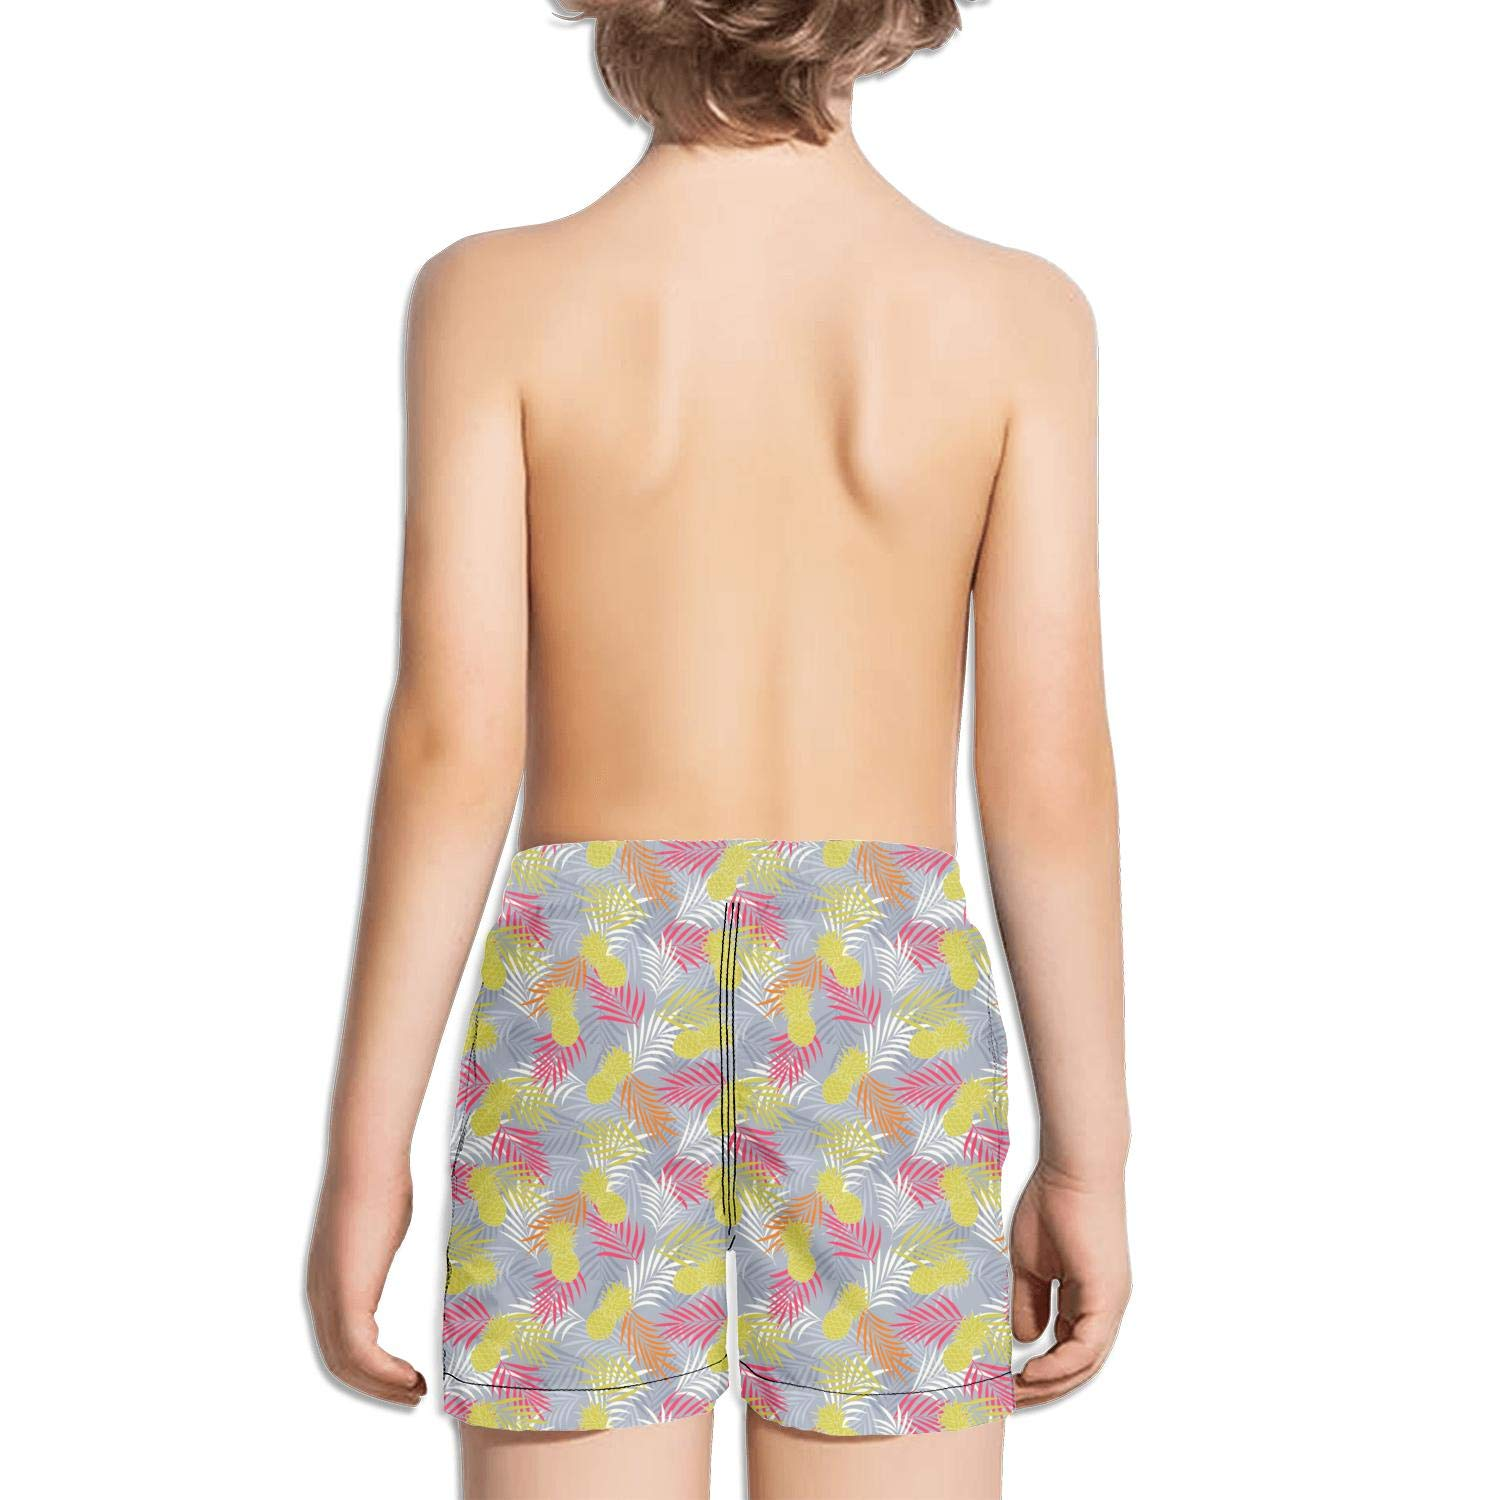 Party Pineapple Gray NAIT.2 Shorts Swimming Tucks for Kid Quick Dry Stretch Board Adjustable Swimming Tucks Bathing Printed